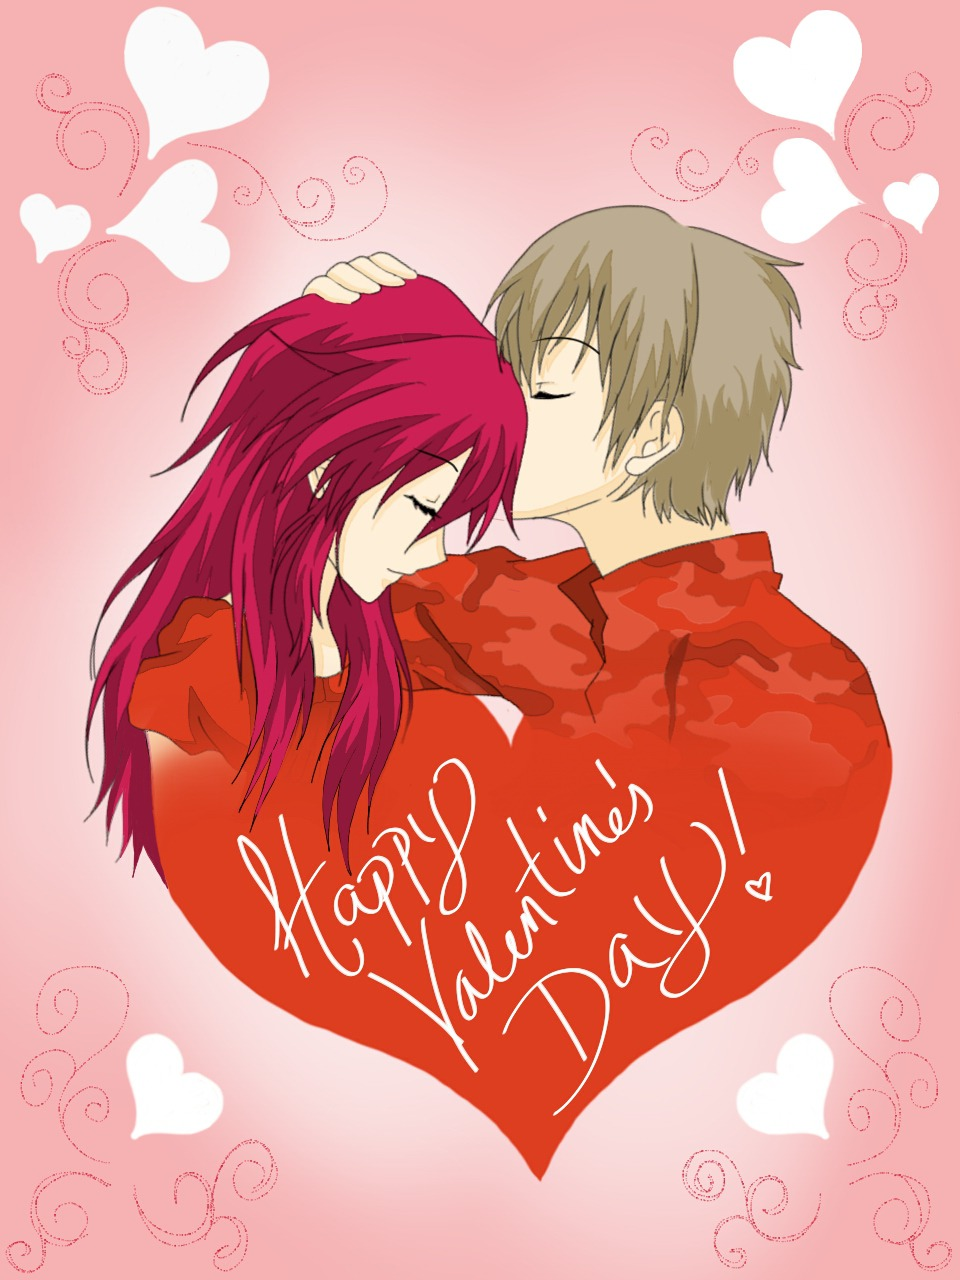 How To Express Your Love This Valentine S Day Top 7 Best Ideas